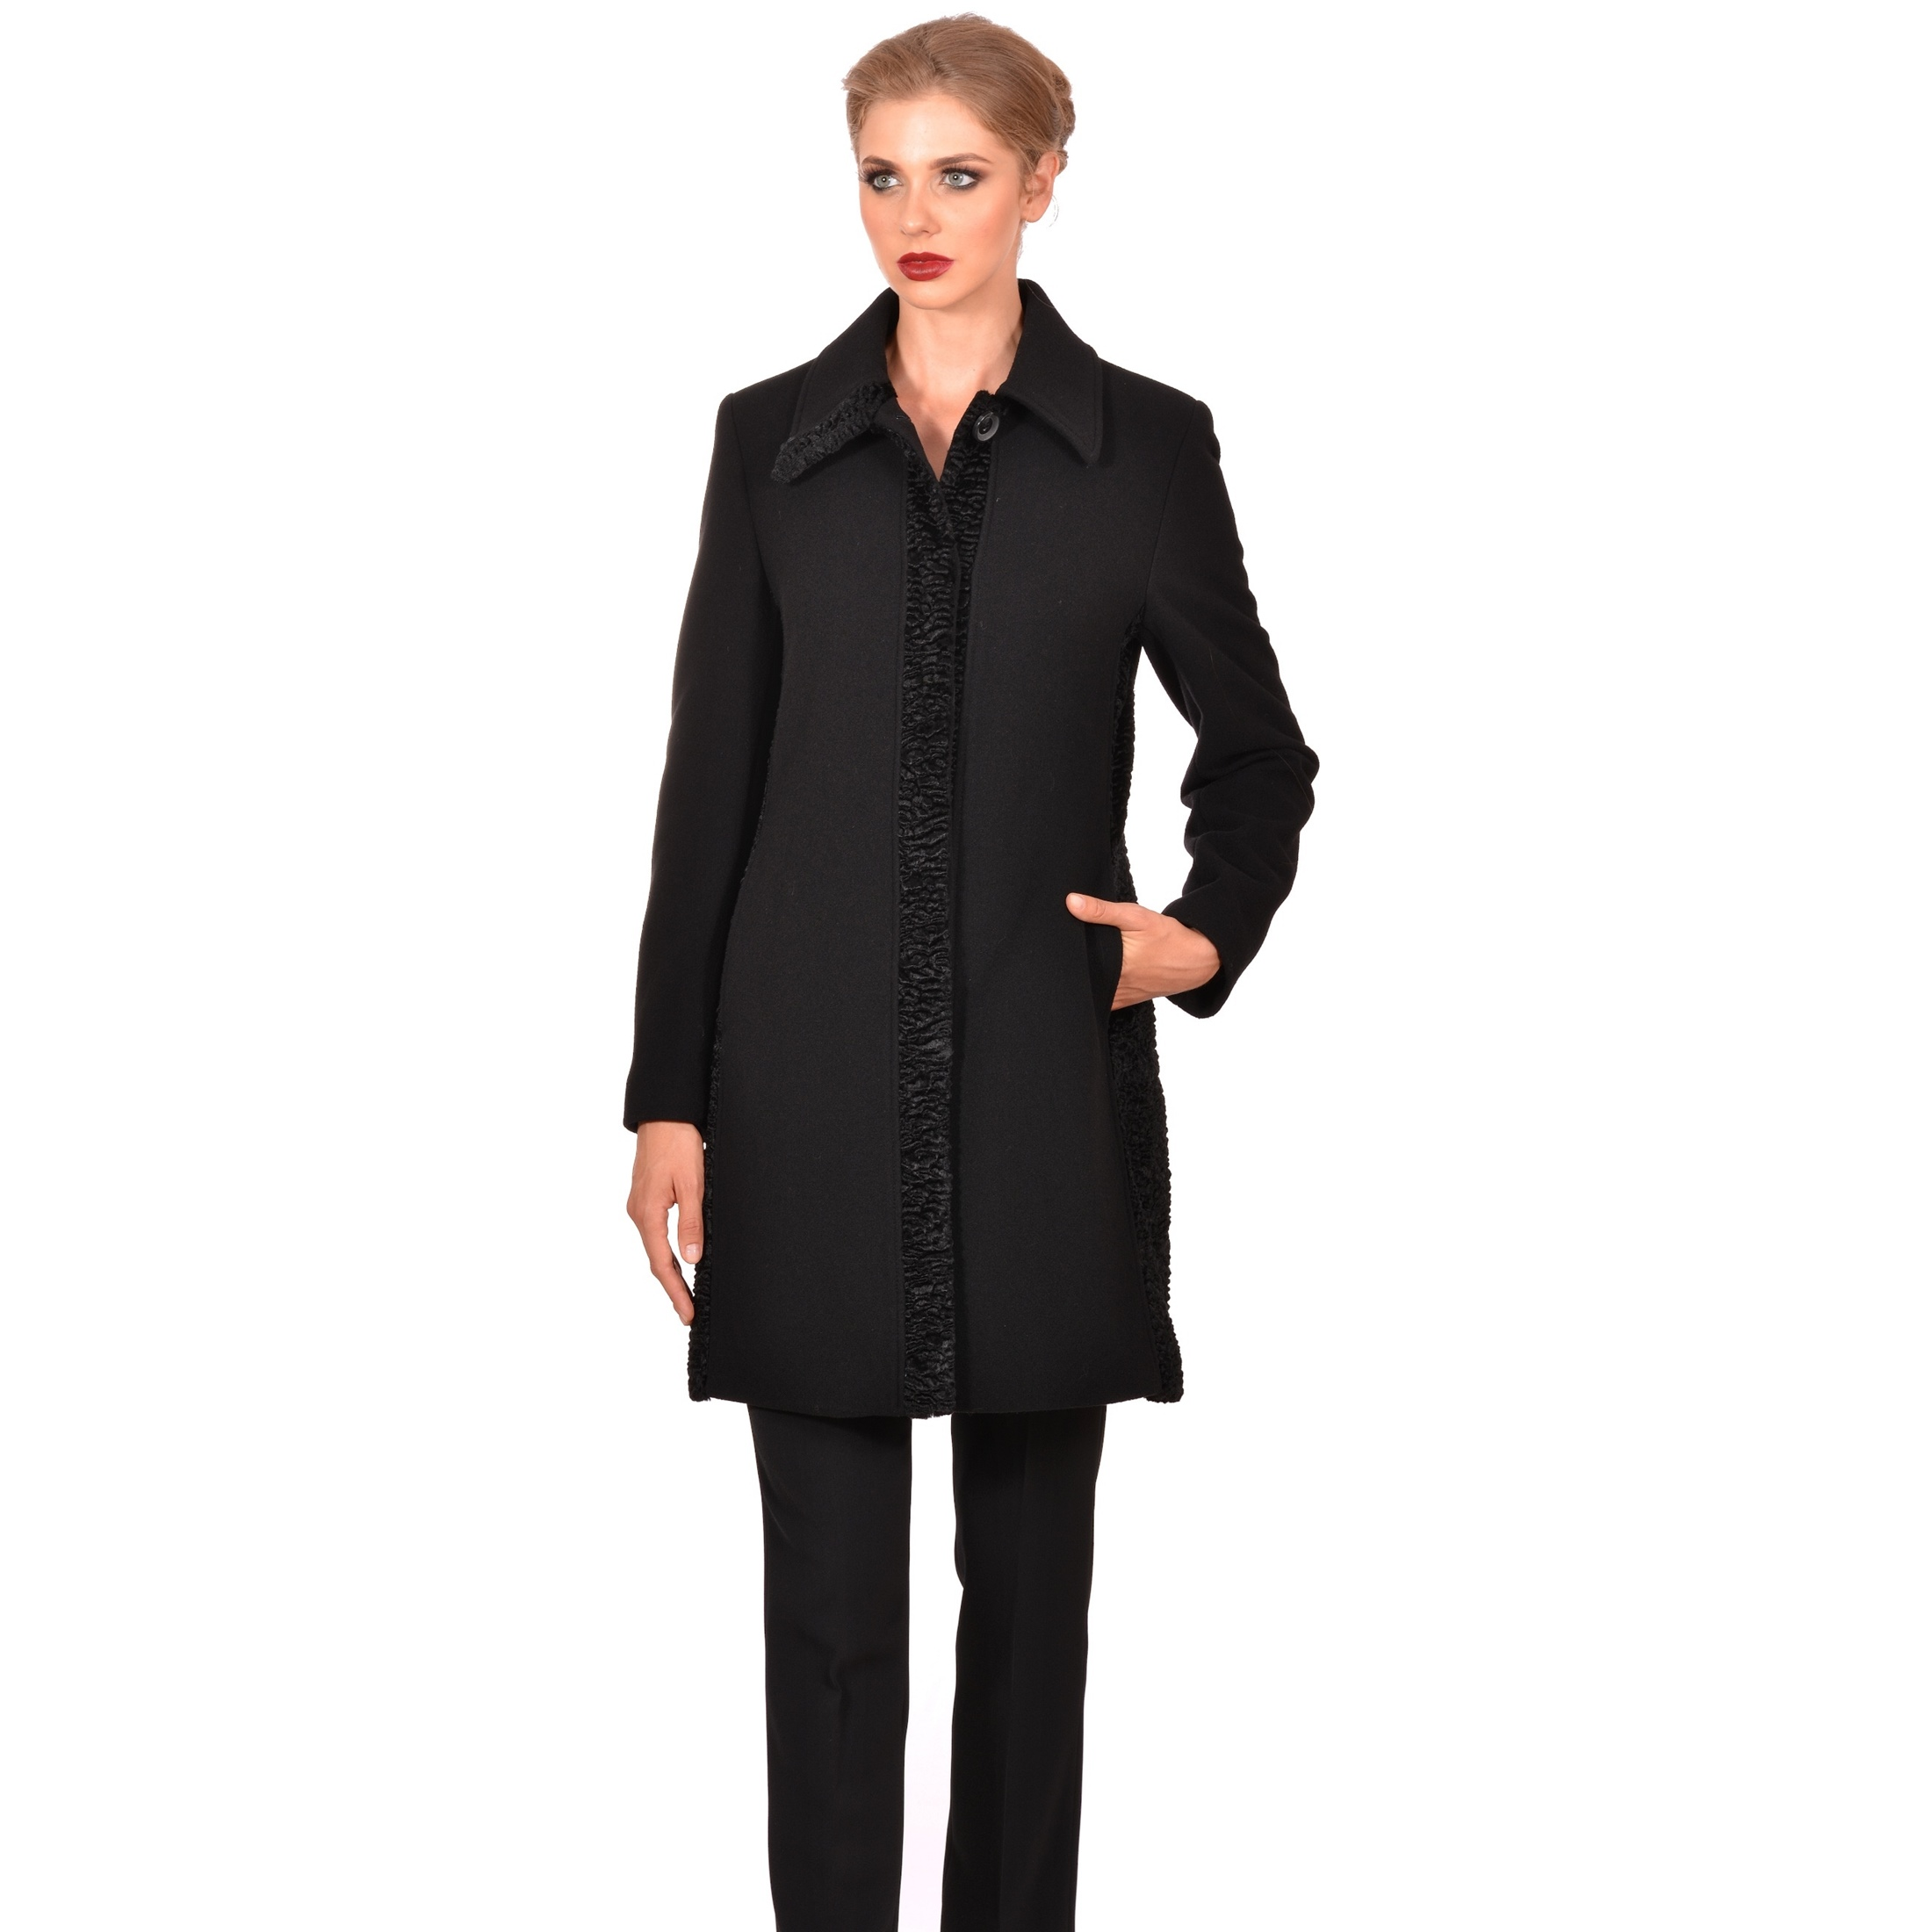 Image de Women's Coat M WOMAN - M60175